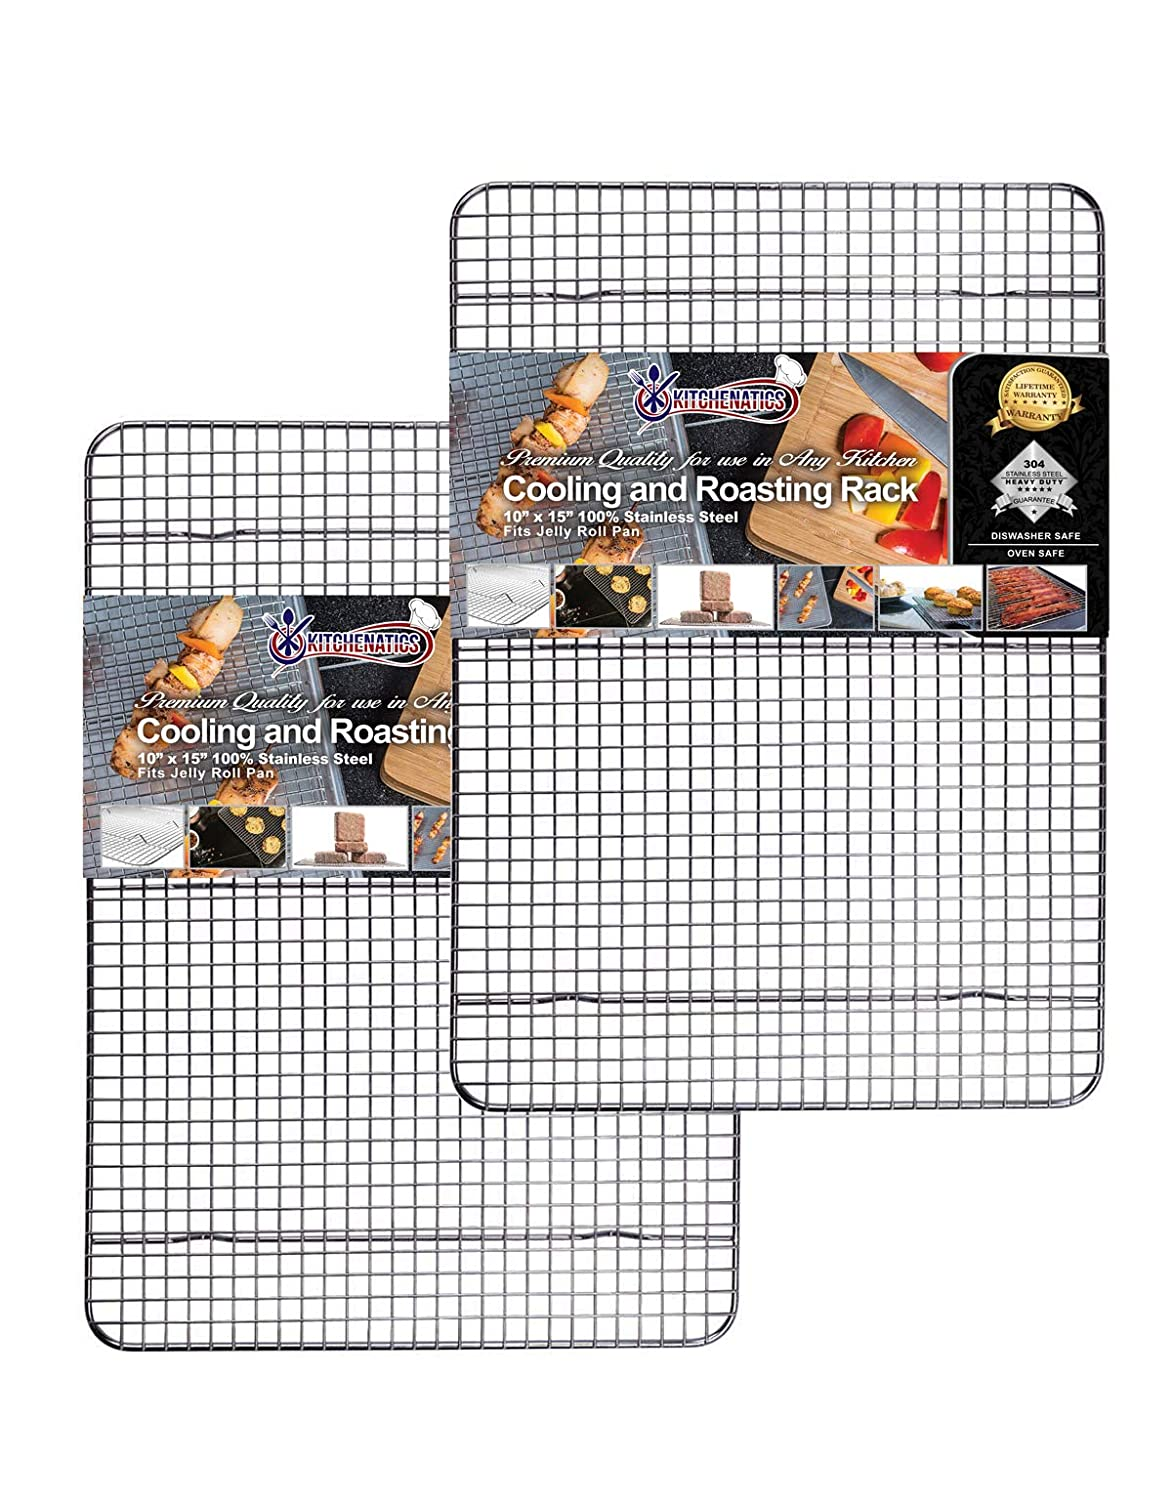 "Commercial Grade Stainless Steel Cooling Rack, Thick-Wire Grid Fits Jelly Roll Pan Oven-Safe Rust-Resistant, Nontoxic for Roasting, Baking, Drying, Cooking (10"" x 15"" SET OF 2)"